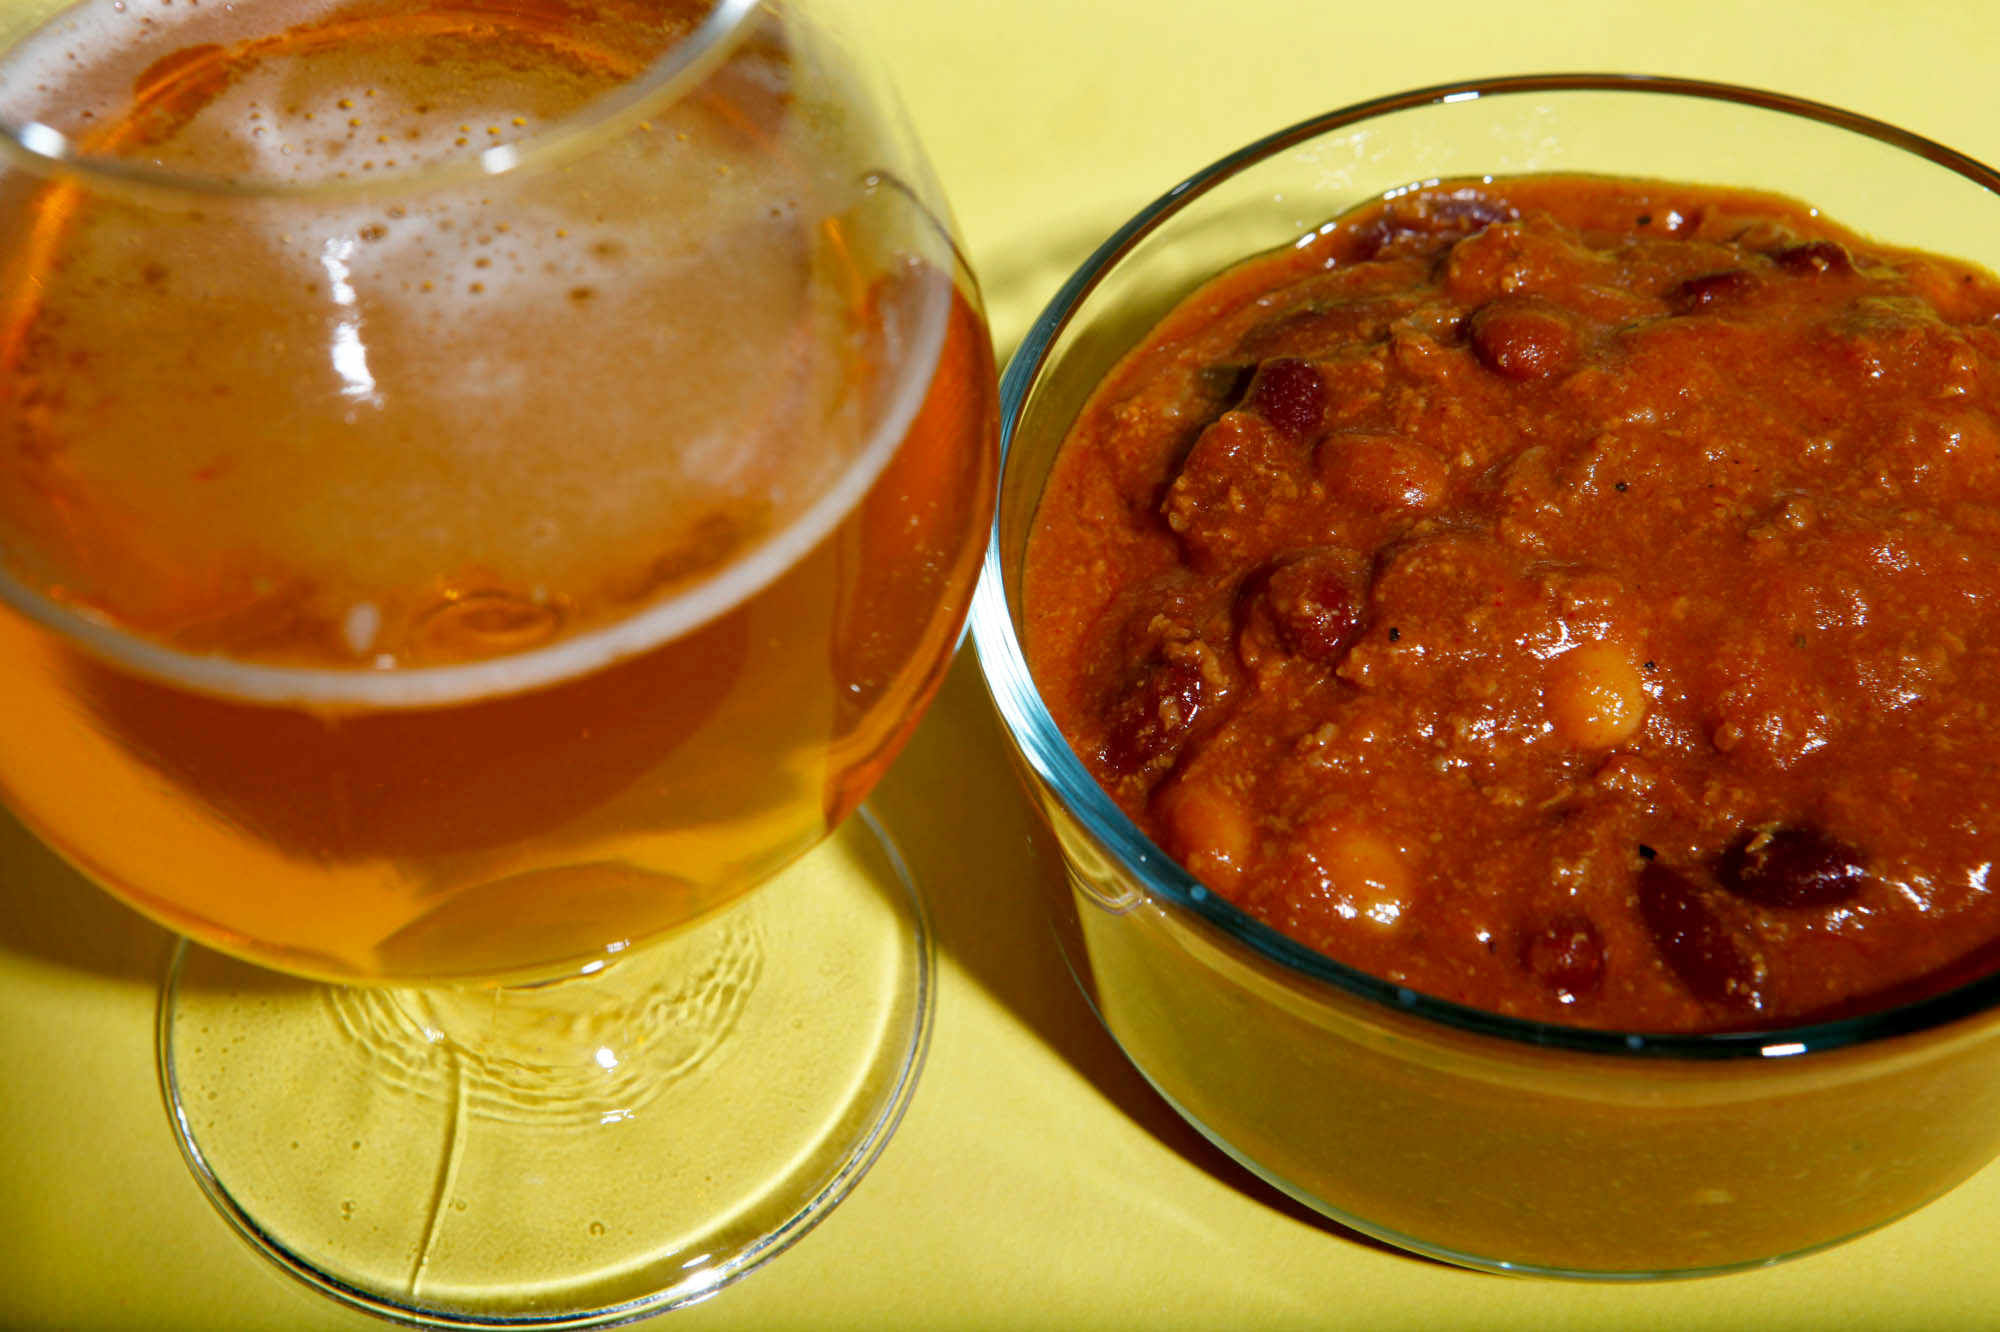 Chili with Chasin' Freshies India Pale Ale Fresh Hop IPA